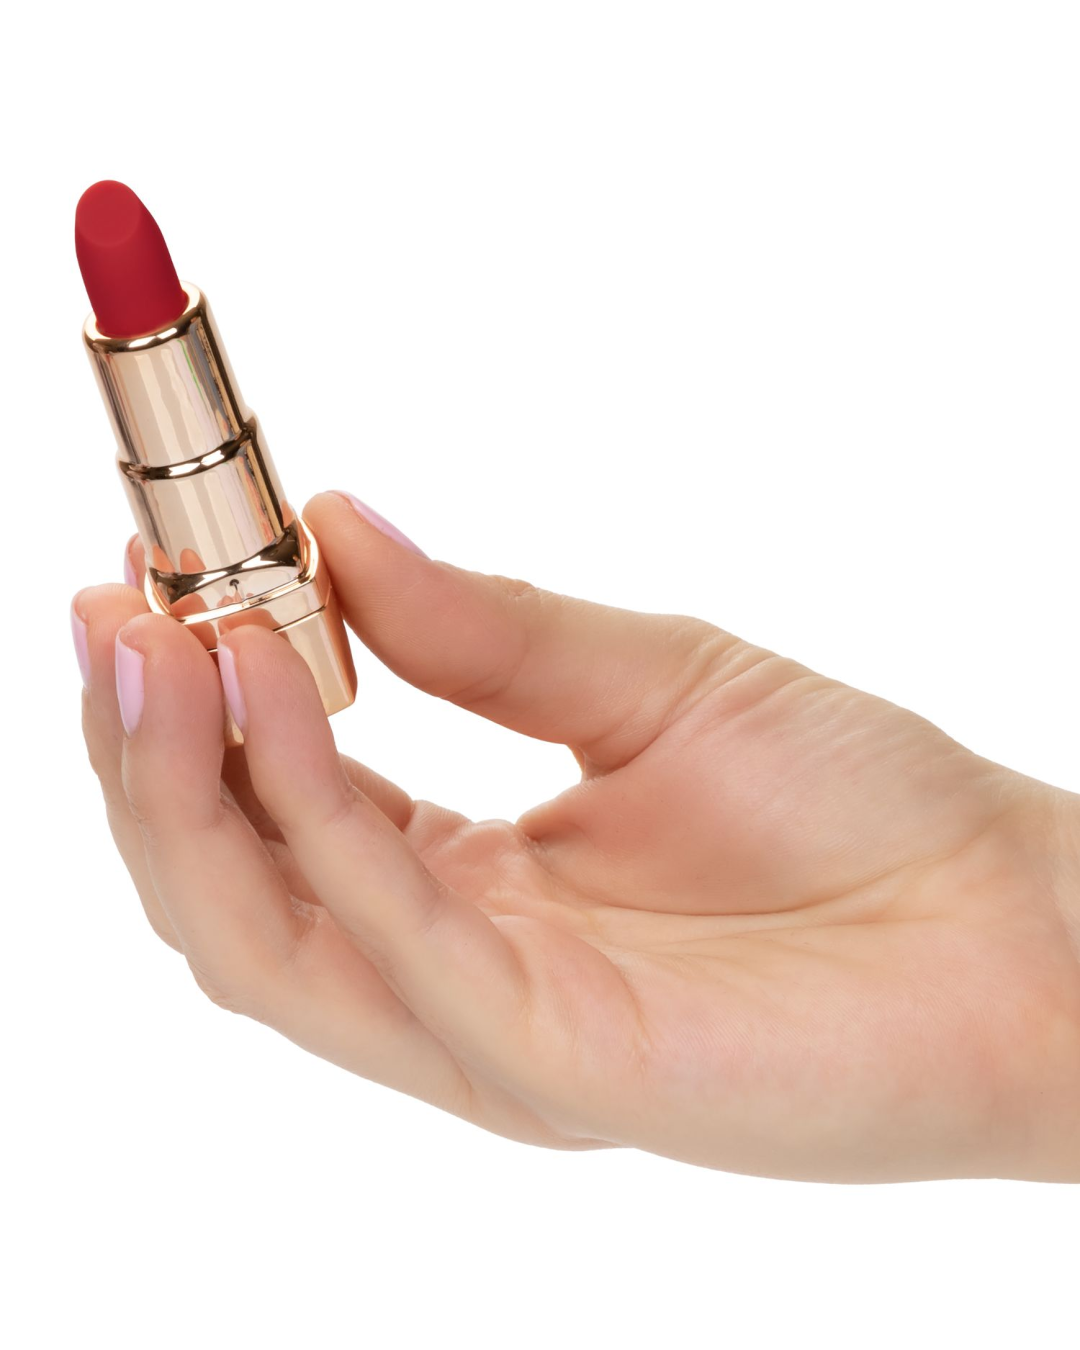 Hide and Play Rechargeable Lipstick Vibrator - Red held in a hand